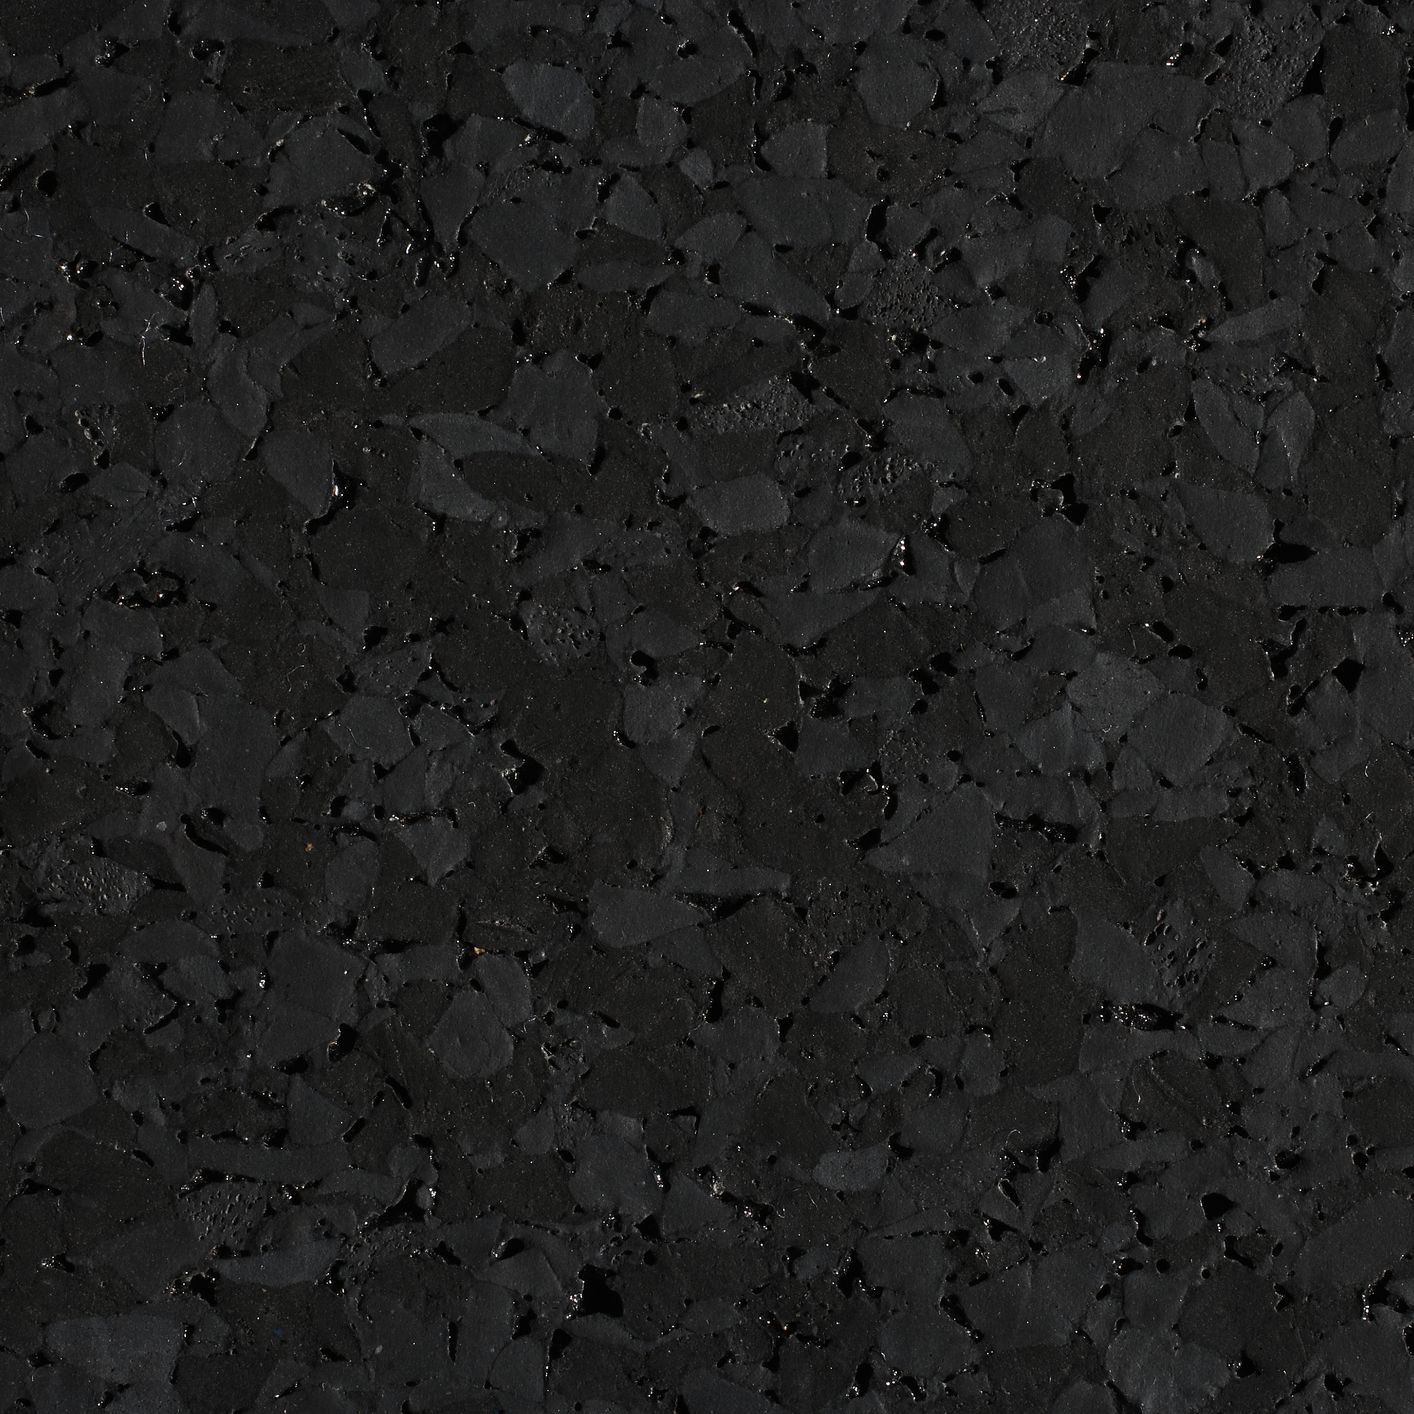 Residential Rubber Flooring Tiles And, Is Rubber Flooring Good For Bathrooms